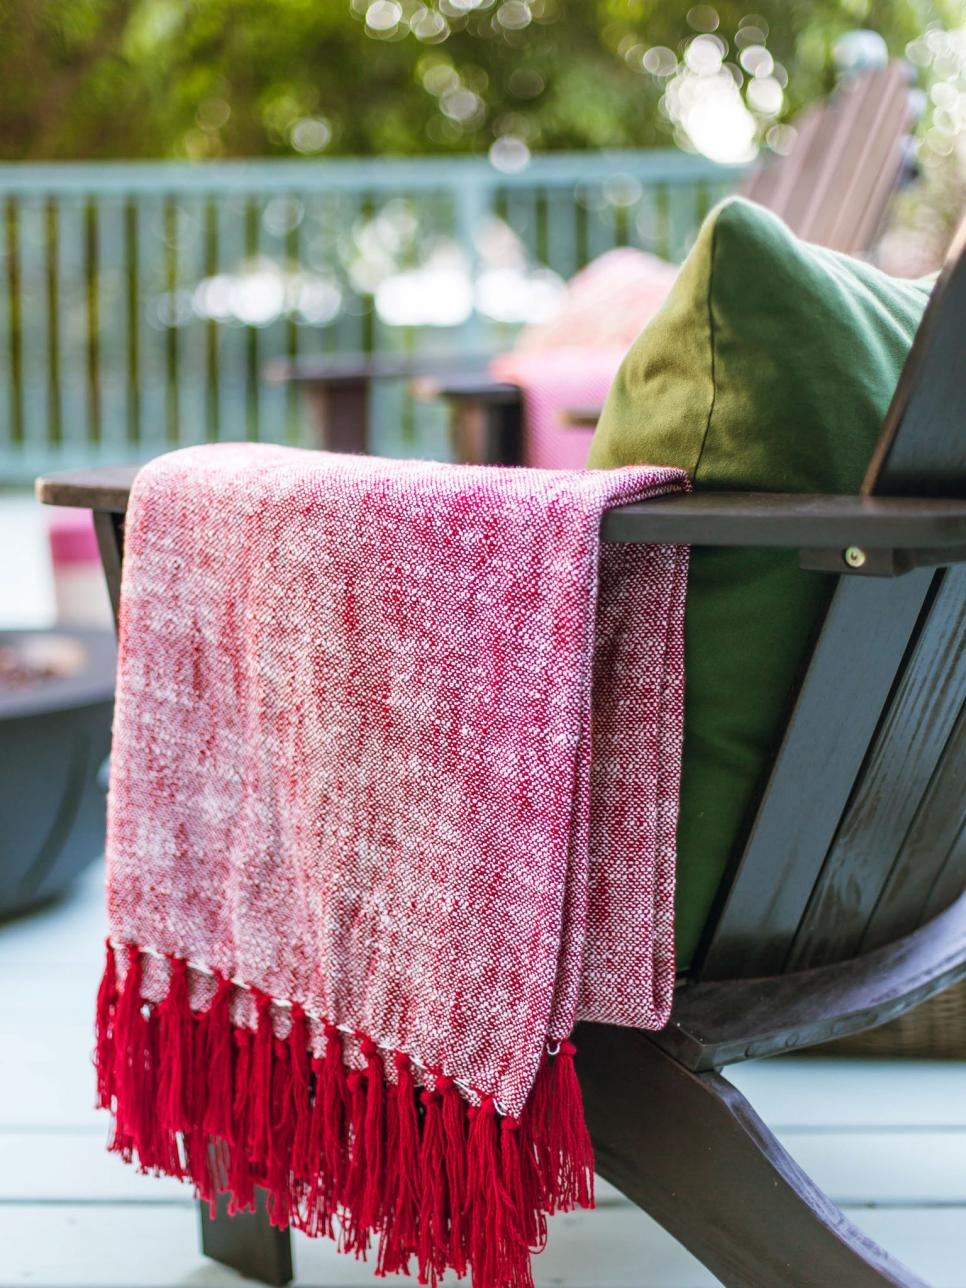 Red Fringed Throw Over Arm of Patio Chair